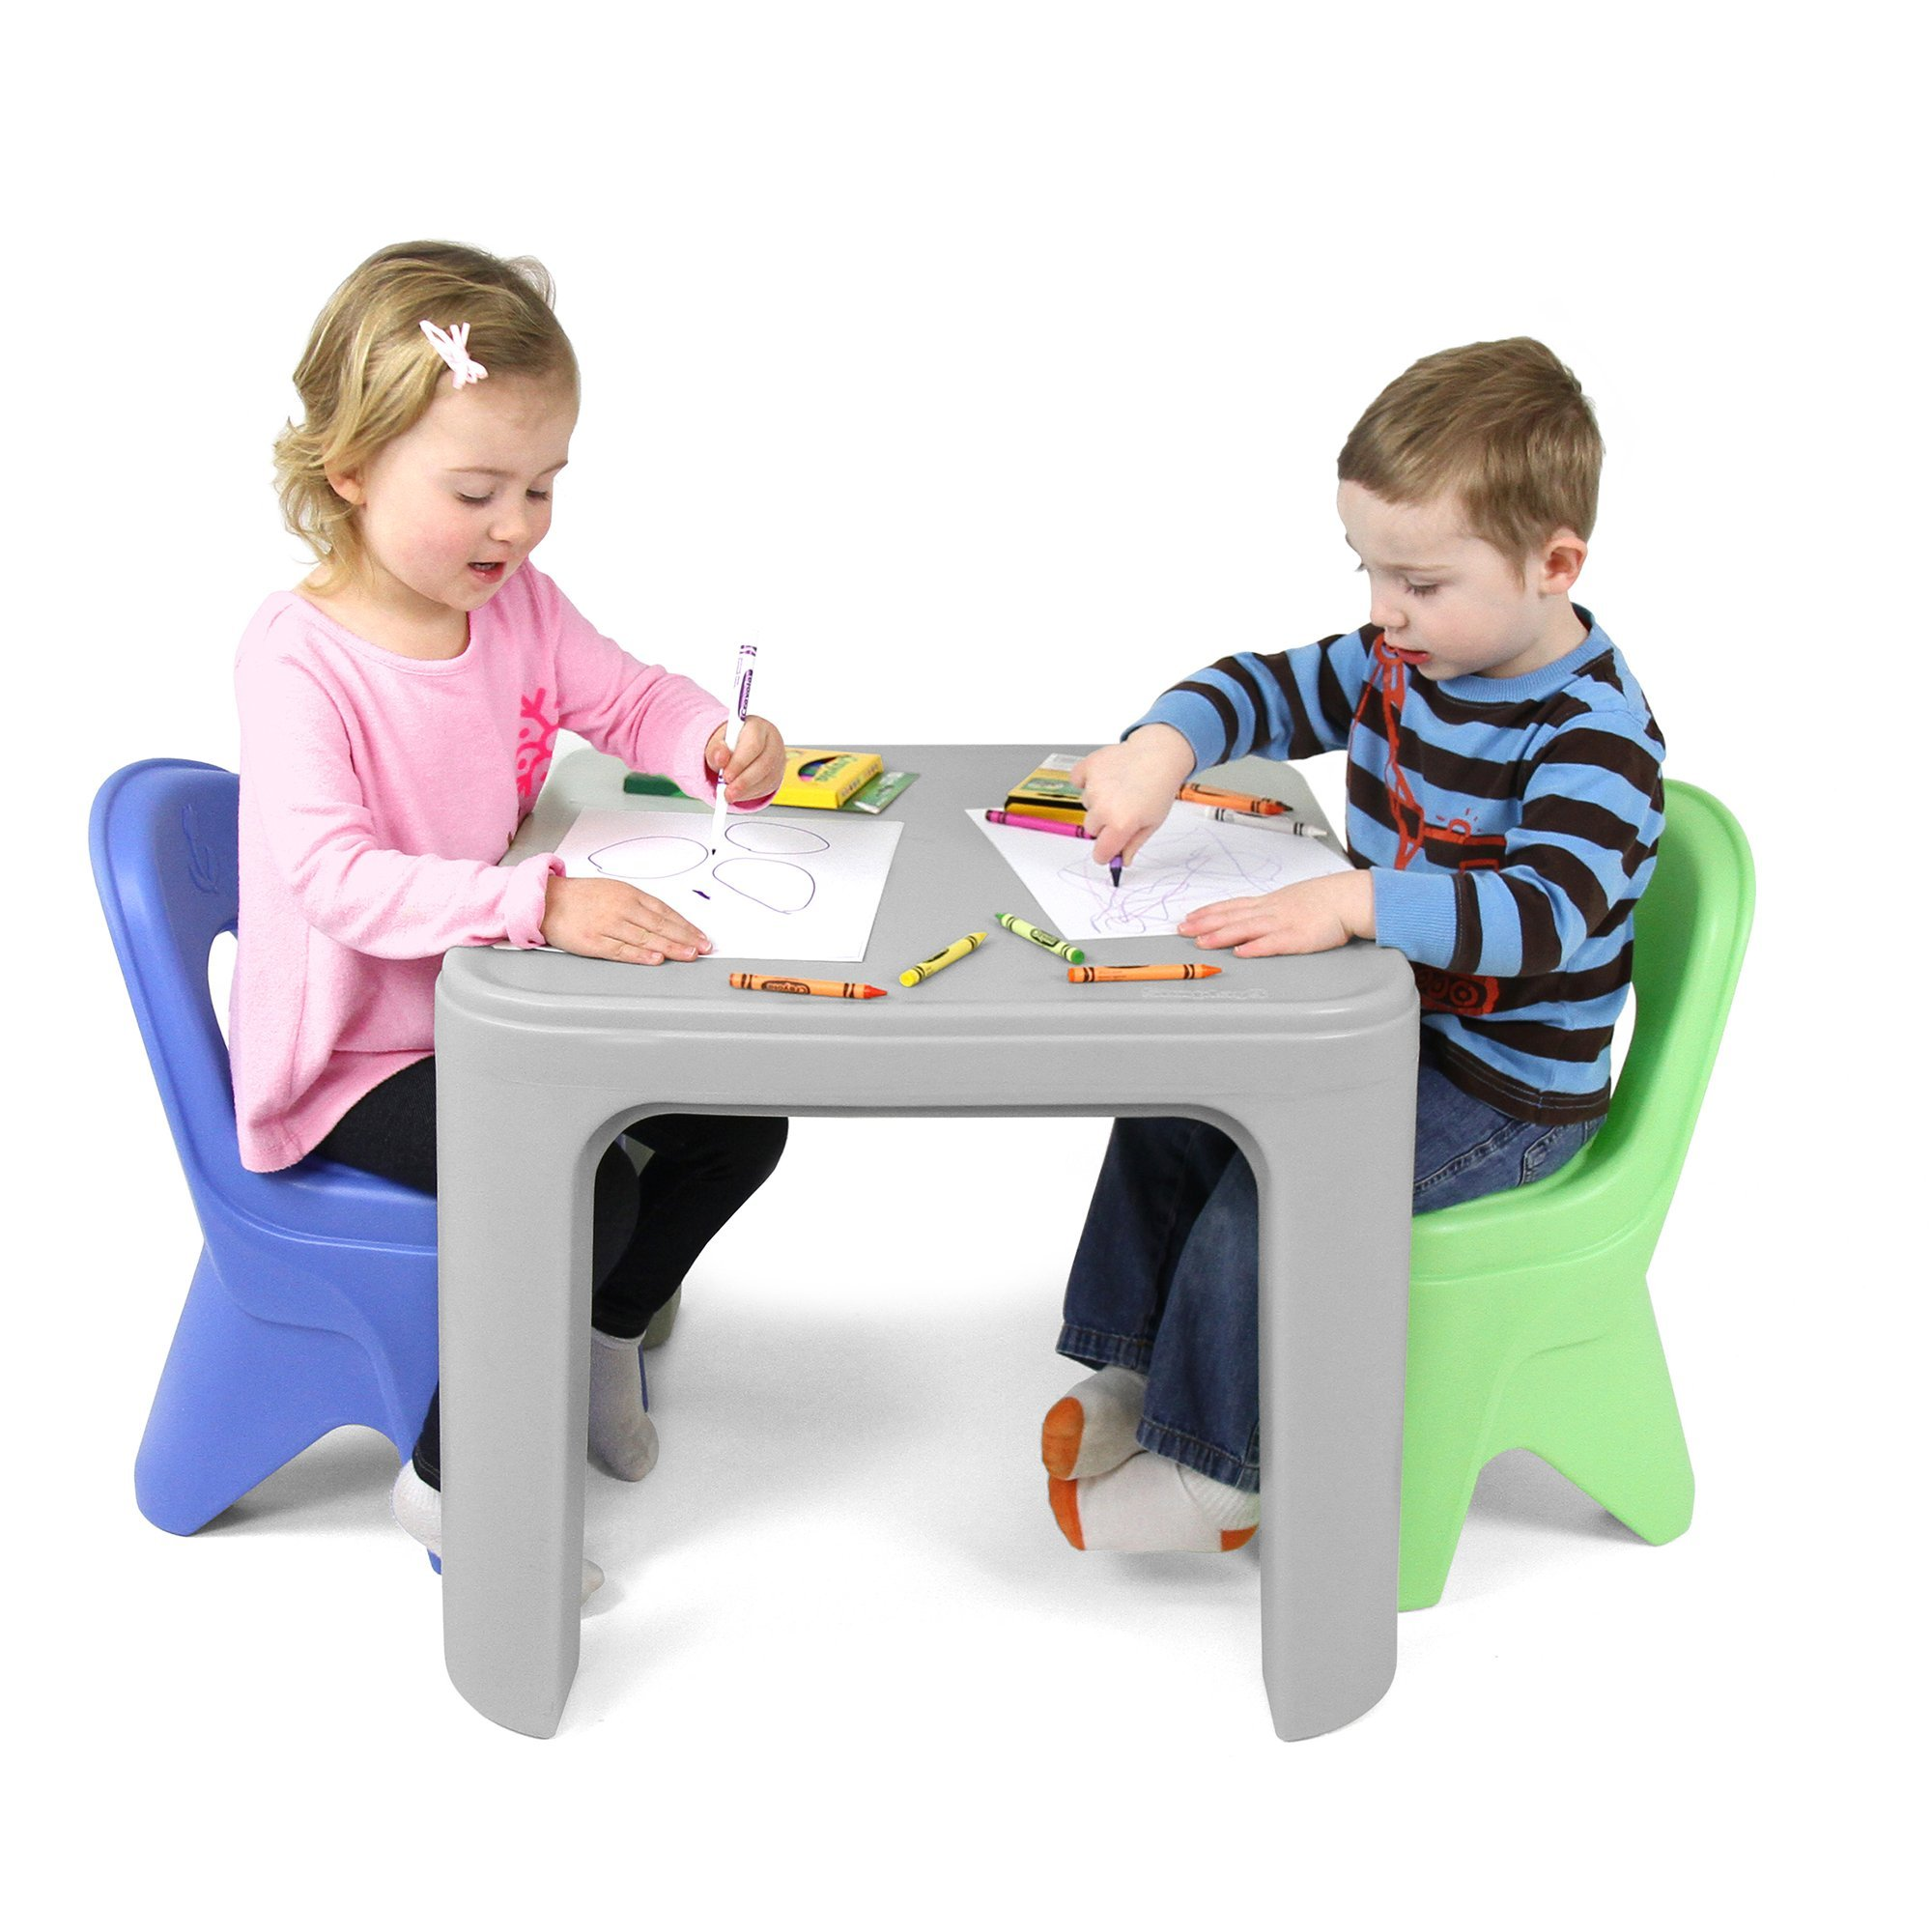 Simplay3 Kids Durable Play Around Table and Chair Set by Simplay3